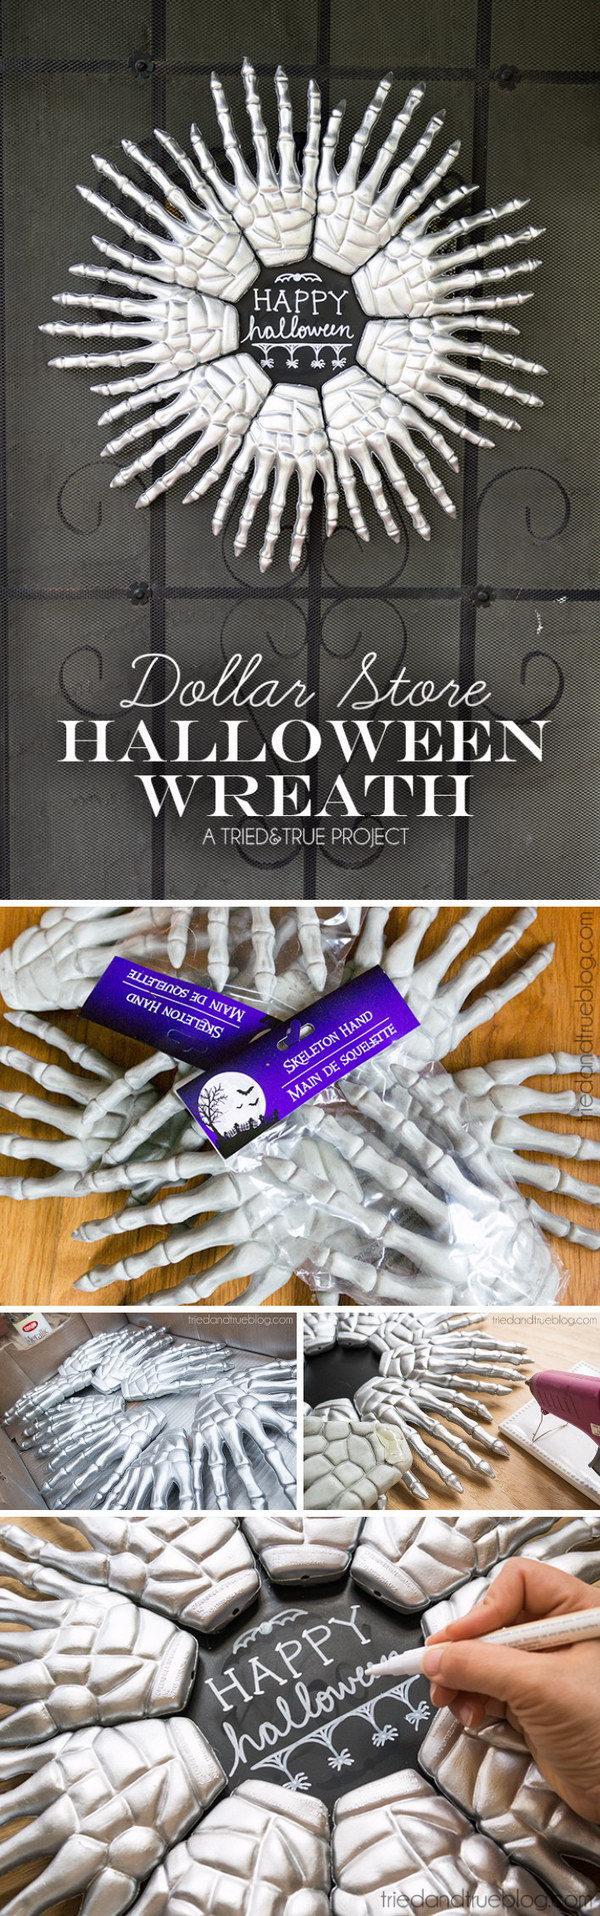 2 dollar store crafts for halloween - 30 Dollar Store DIY Projects for Halloween